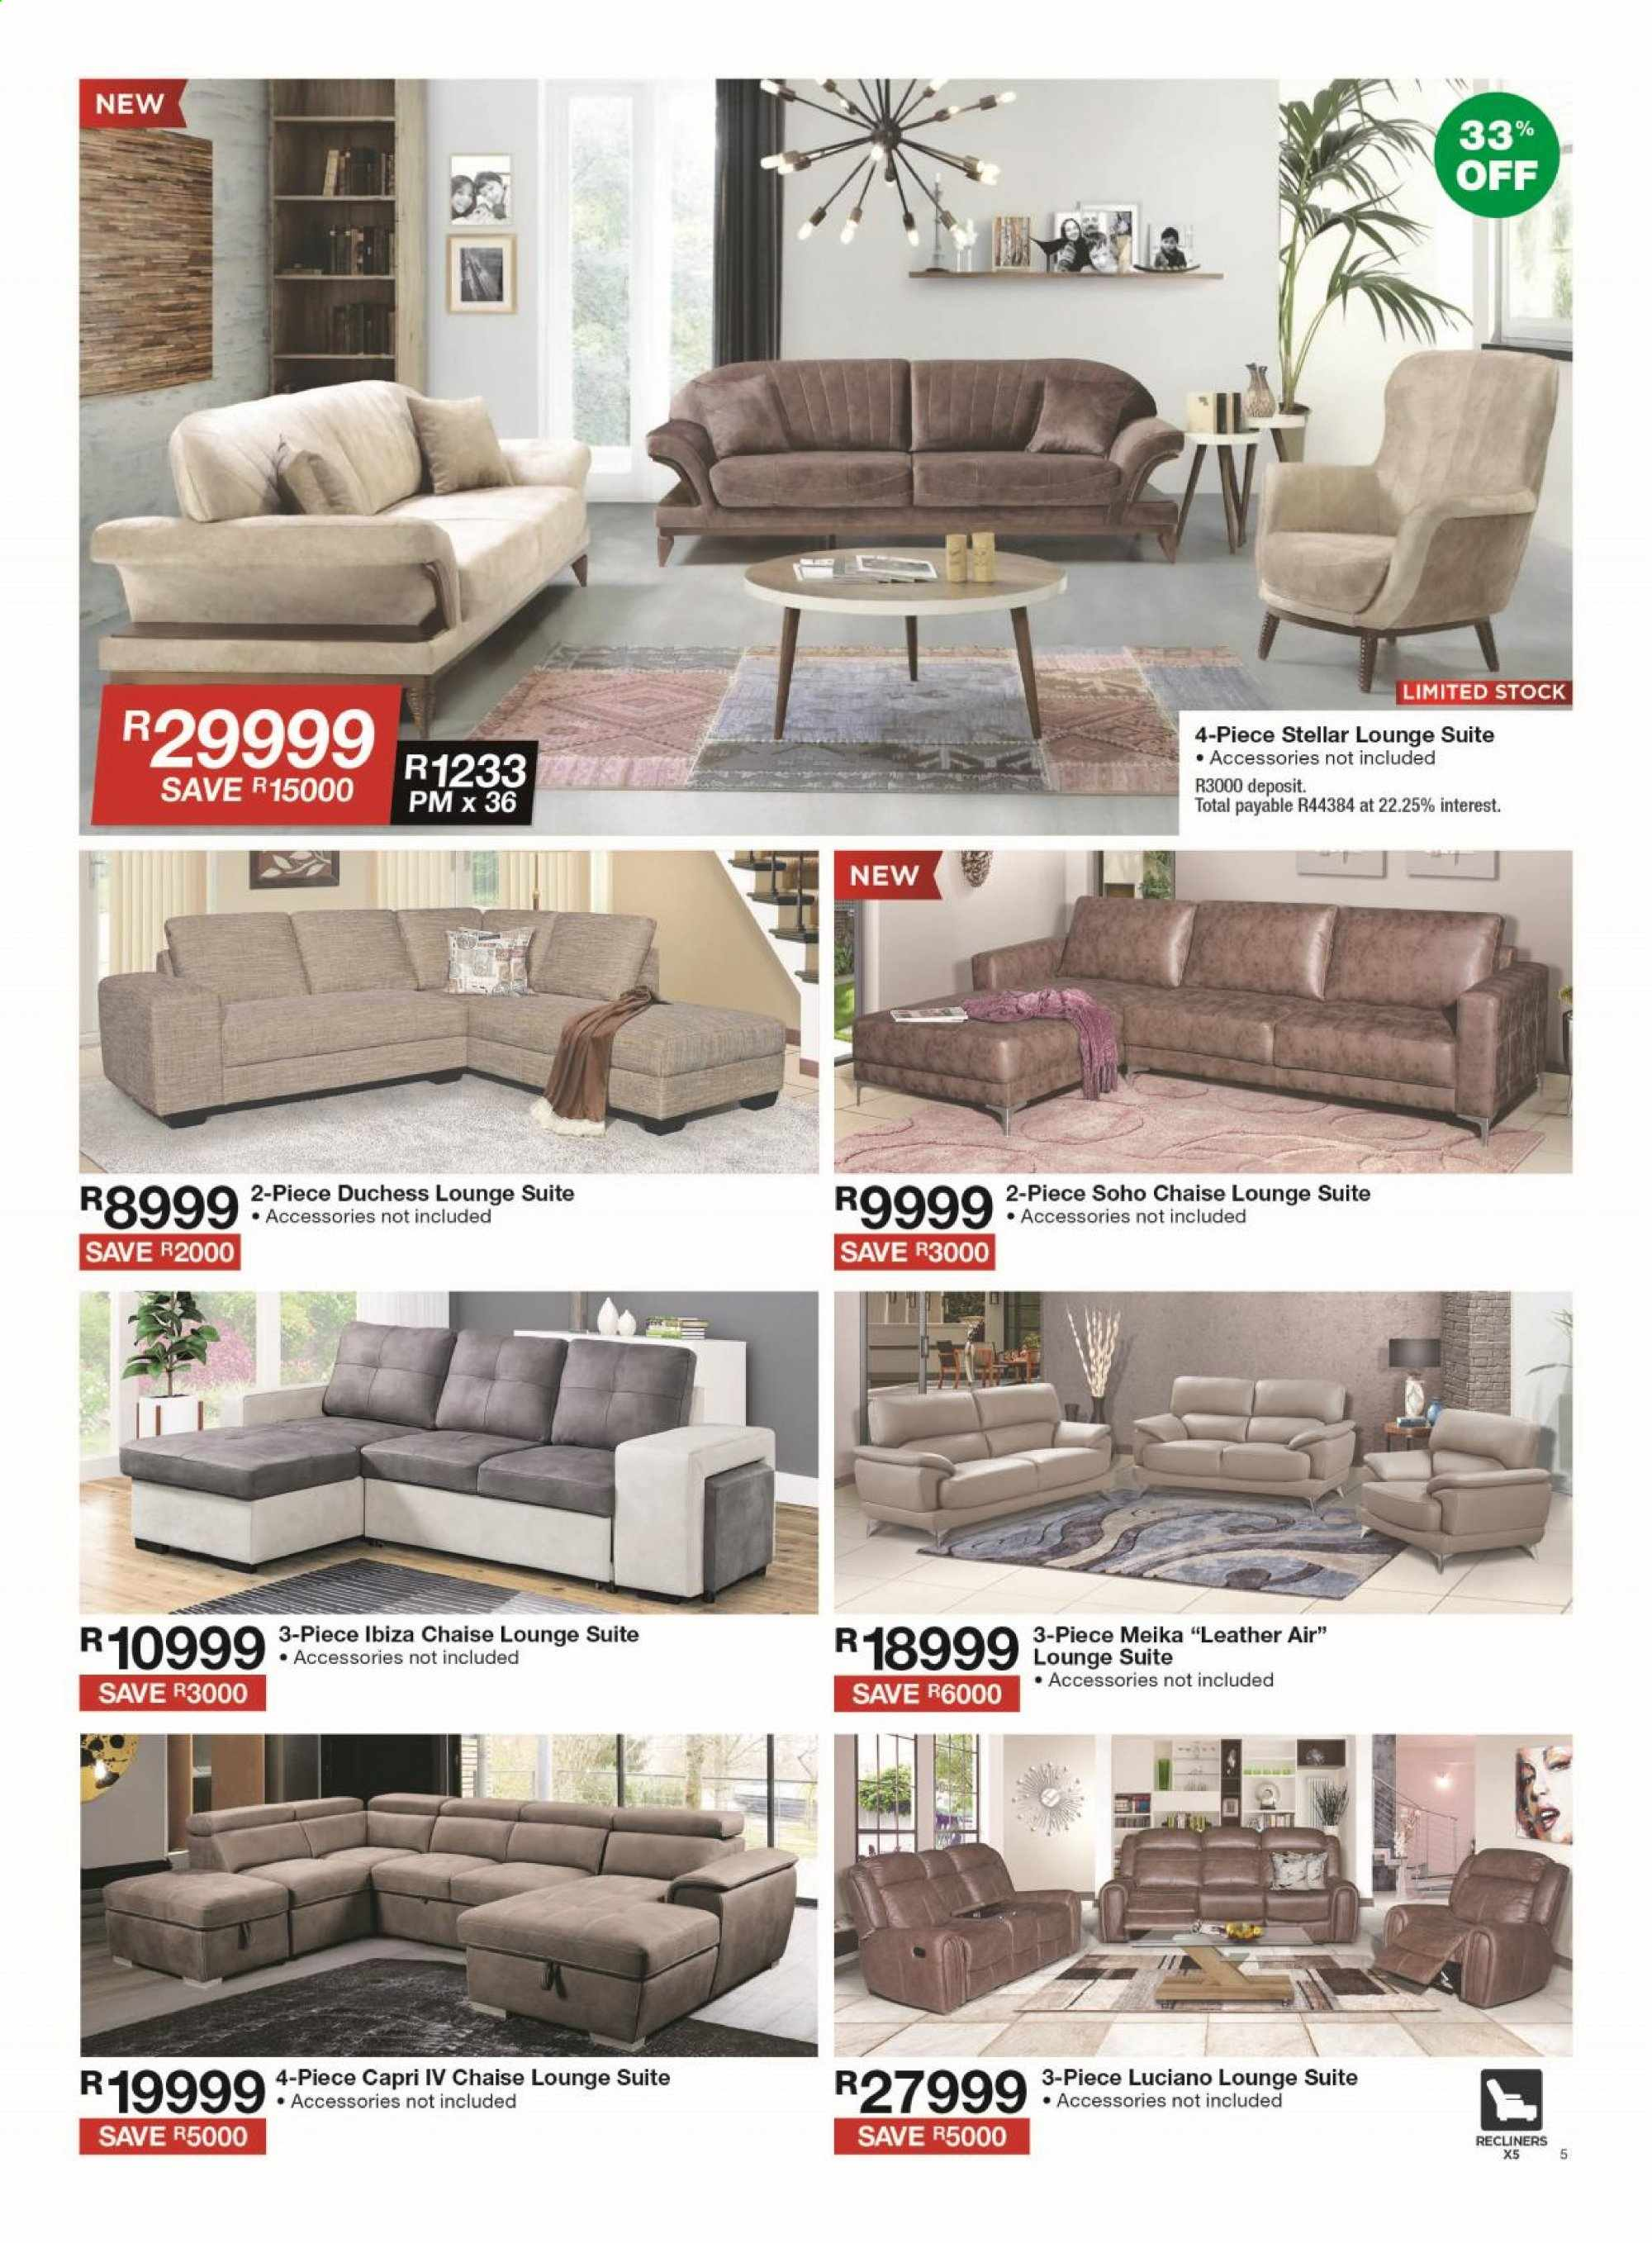 House & Home catalogue  - 02.24.2020 - 03.08.2020. Page 5.